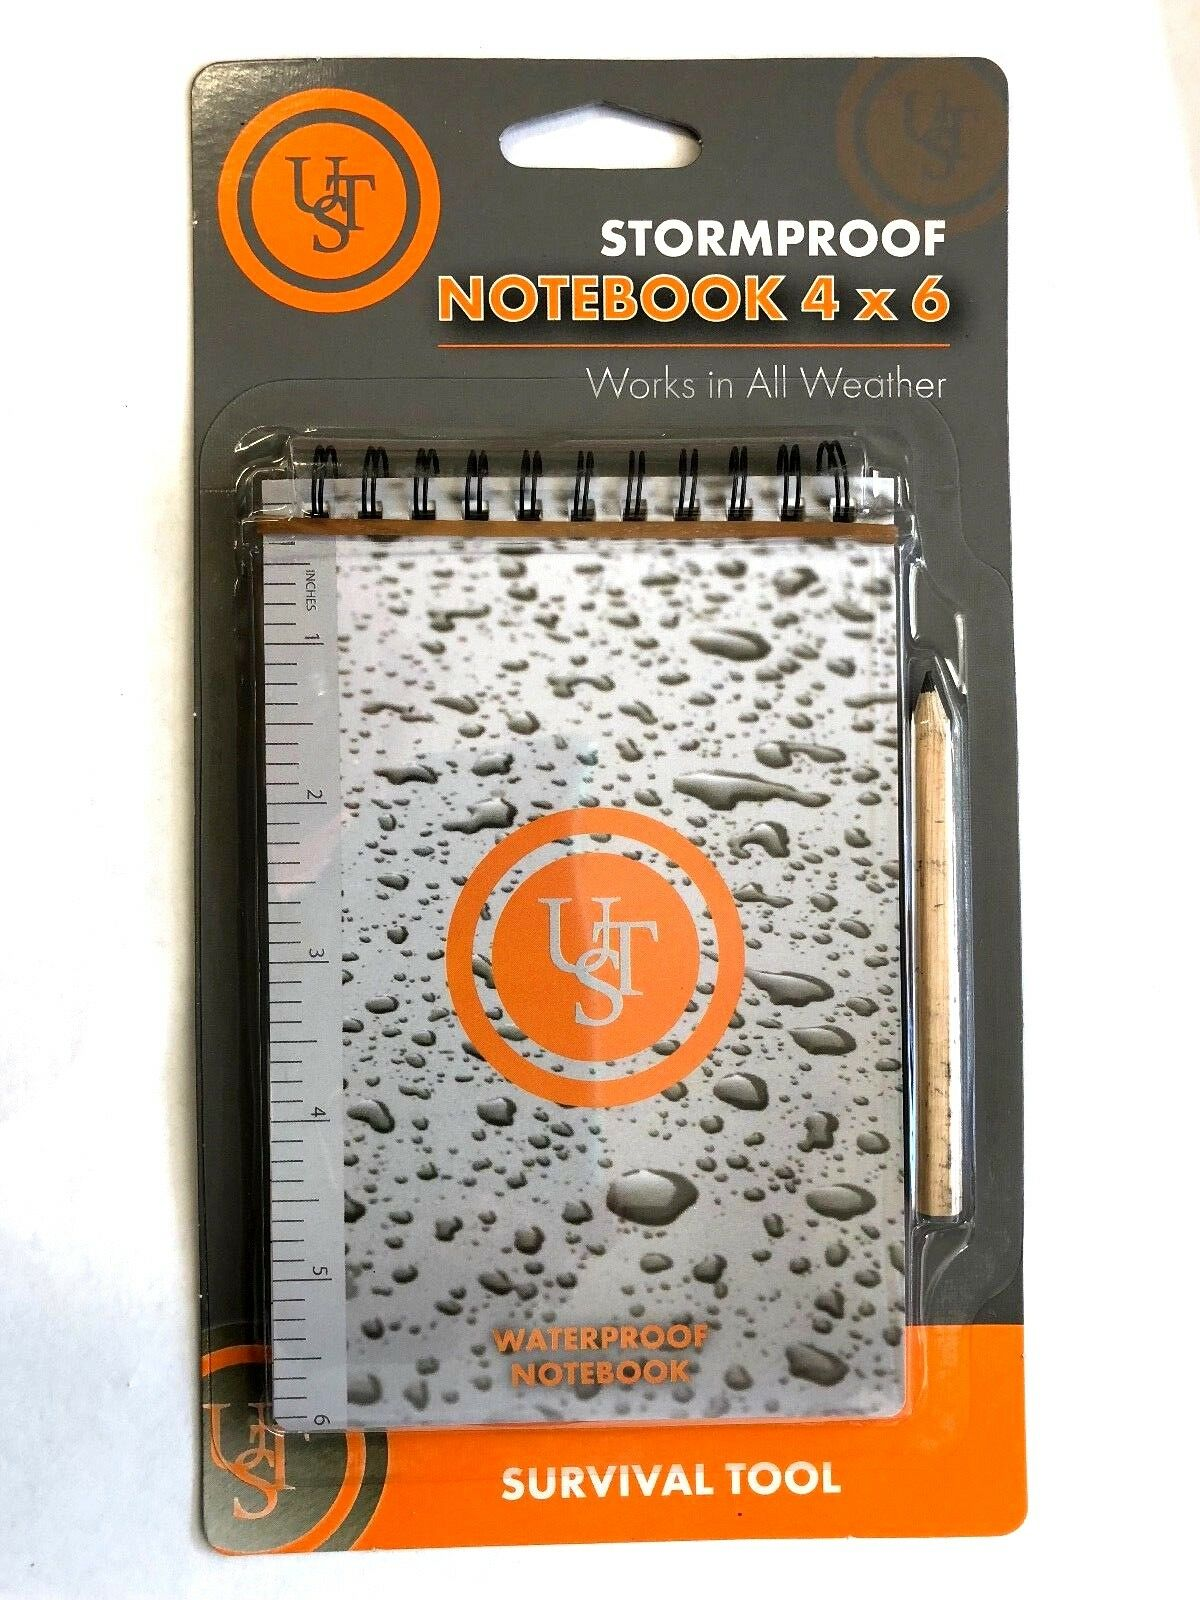 Details about  /Stormproof Notebook 4x6 all weather emergency disaster tactical preparedness UST